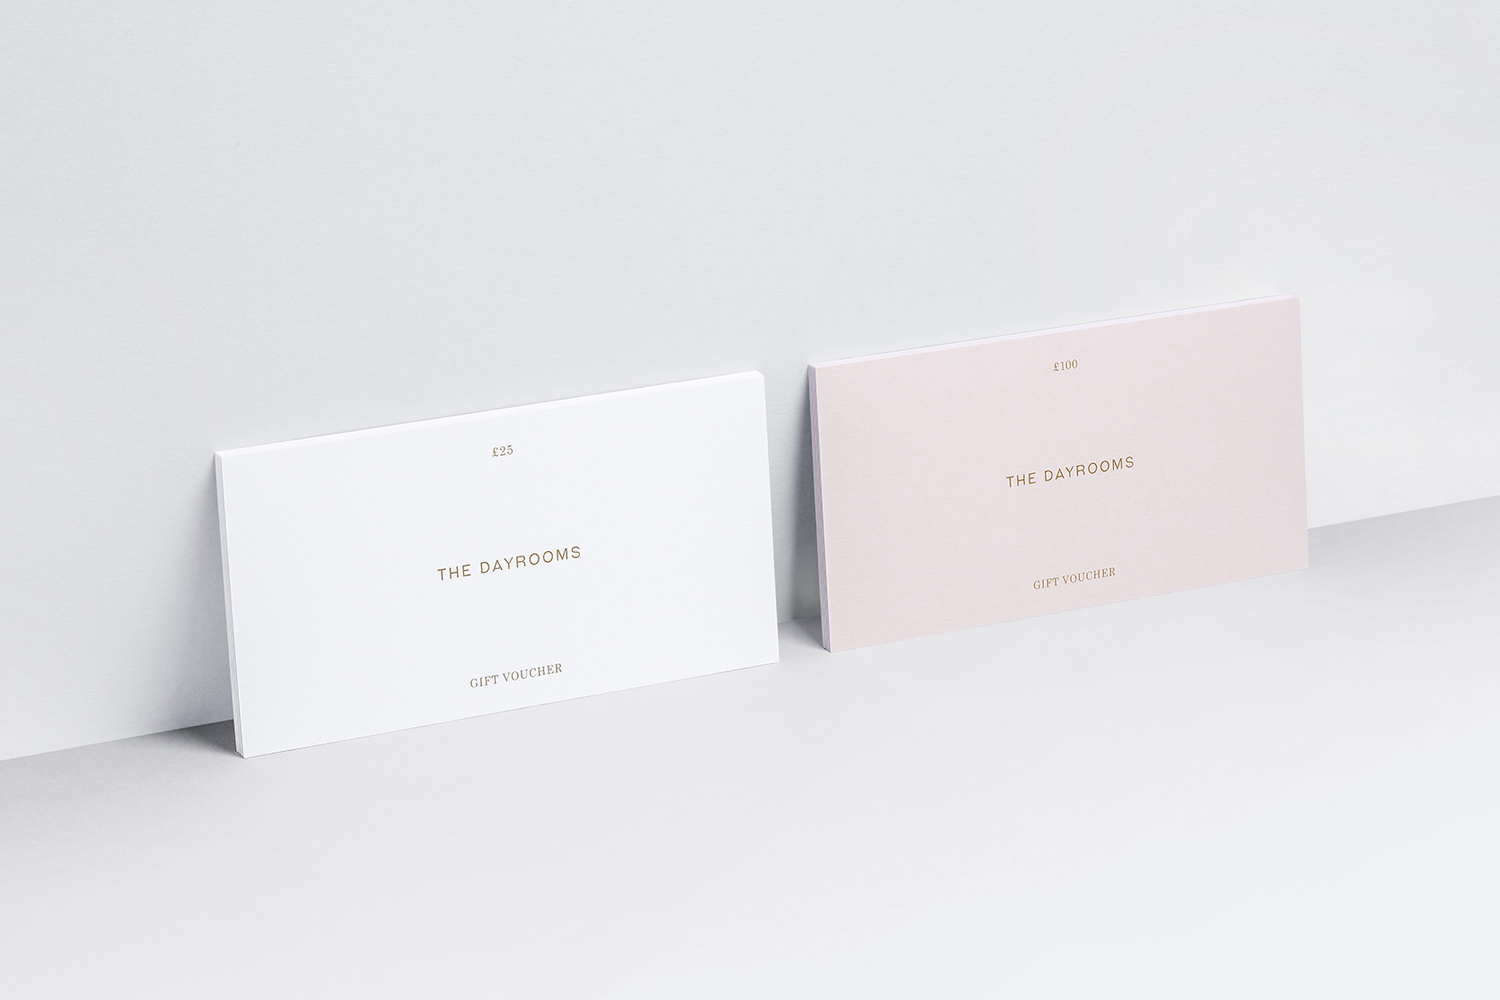 Gift voucher designed by Two Times Elliott for Australian fashion boutique in London The Dayrooms